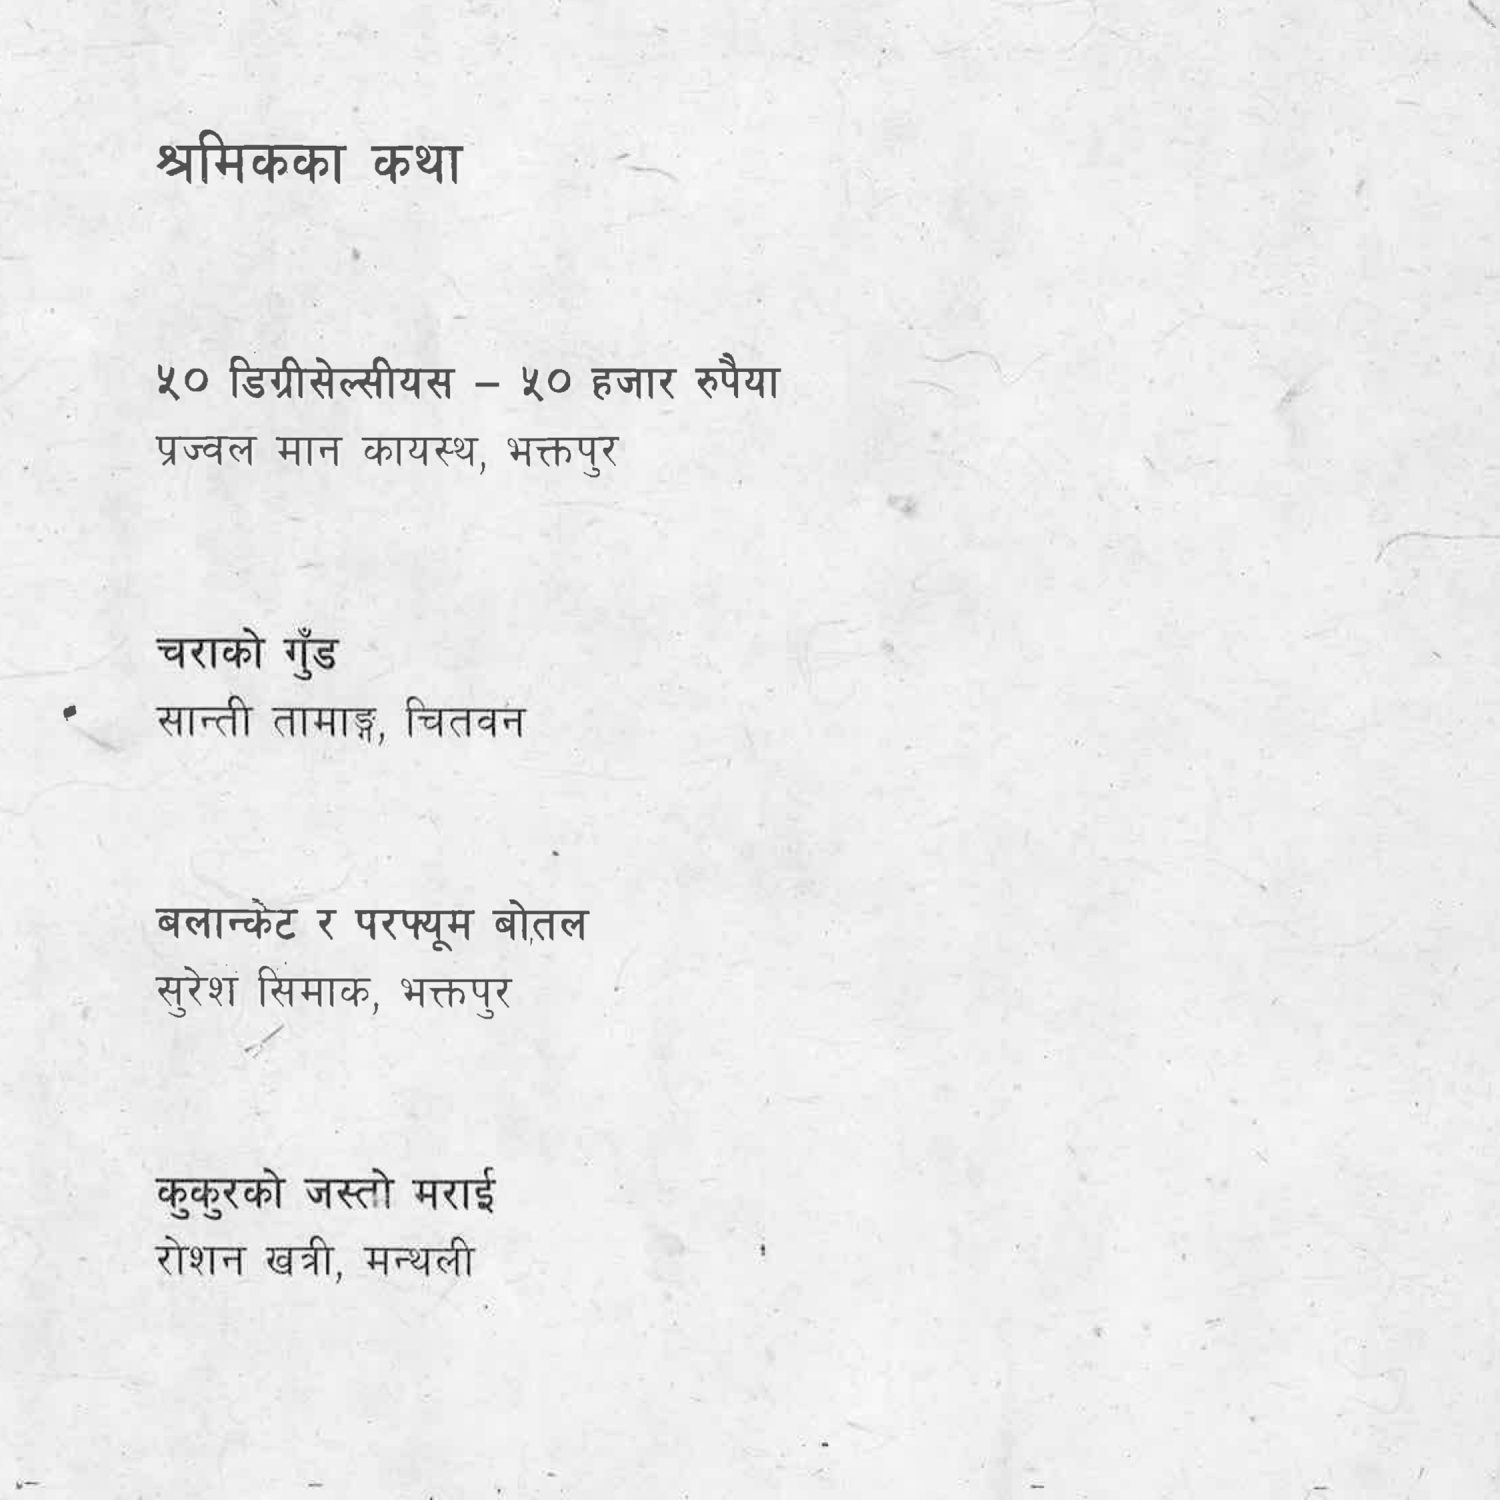 Raju GC, Shramik ka Katha (Migrant's Story) - Video Screening Titles in Nepali, Multimedia Installation, Audio Stories and Video Screenings, Chysal, 2018